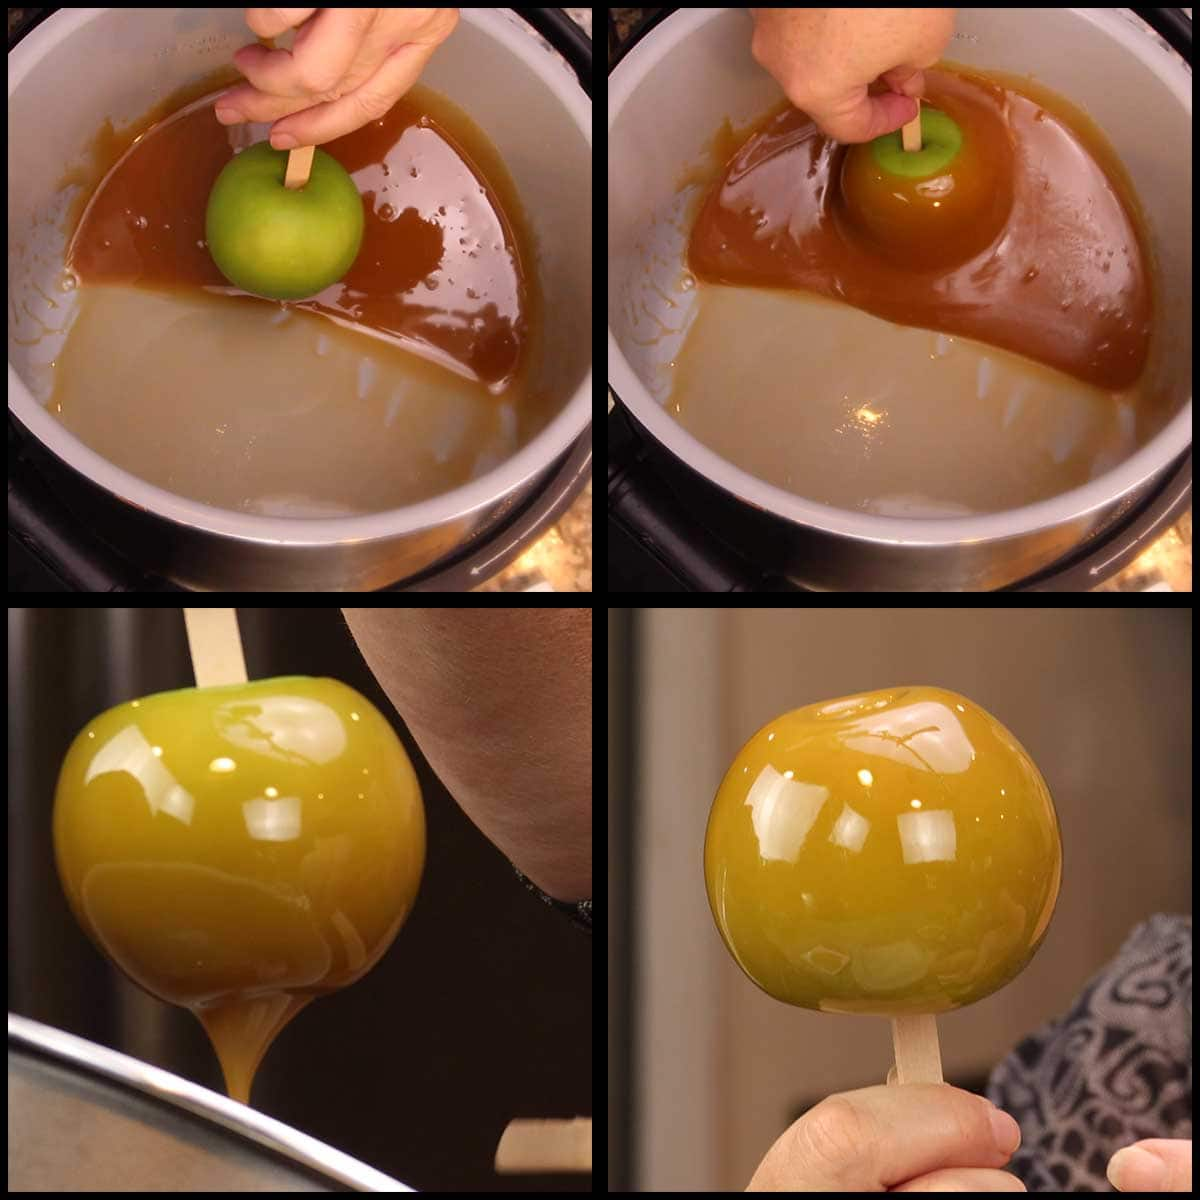 dipping the apple in caramel